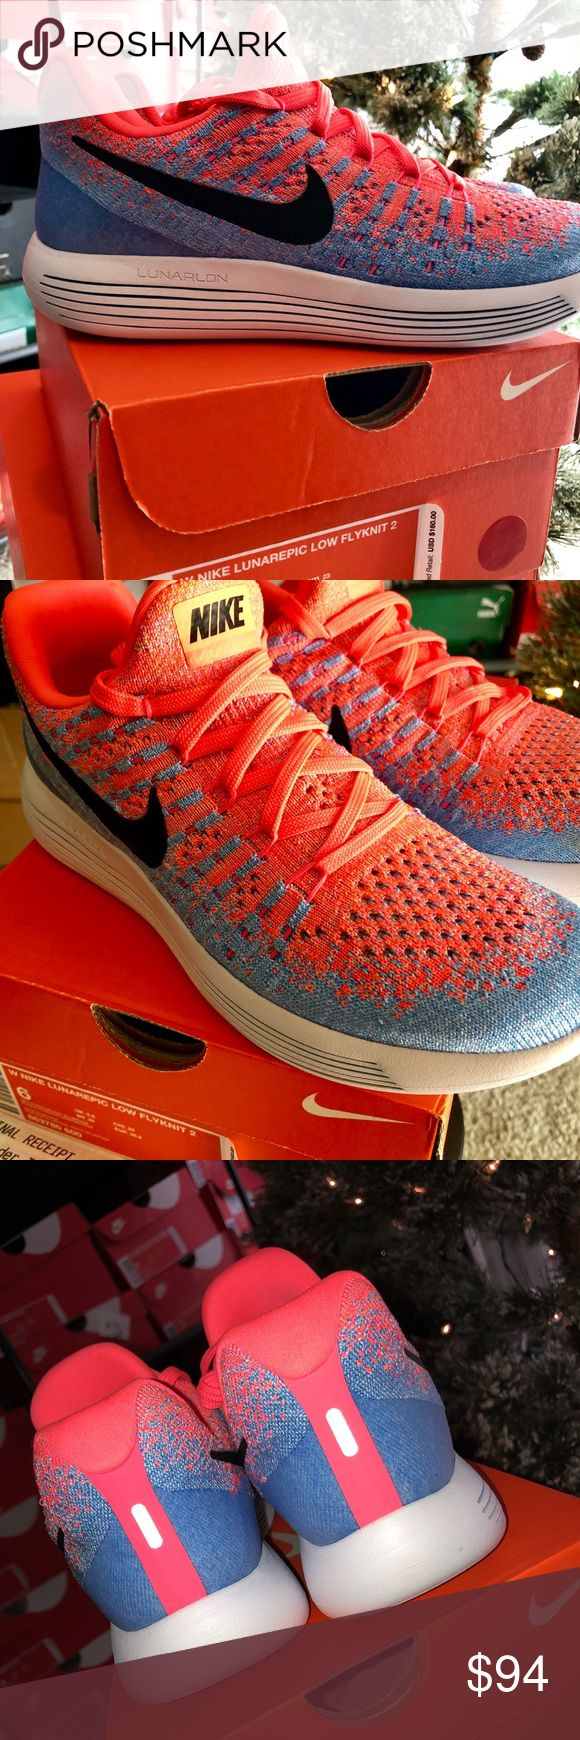 🚺👟 Nike Lunarepic Low Flyknit 2: Sz6-8.5, NWB🎁 Brand new in box with receipt, Ladies Nike Lunarepic Low Flyknit 2: Hot Punch/Aluminuum (Pink & Blue), Sizes 6, 7.5, 8, & 8.5, all NWB & Deadstock. Retail for $140, awesome Xmas gift for your girl, wife or daughter! Nike Shoes Athletic Shoes